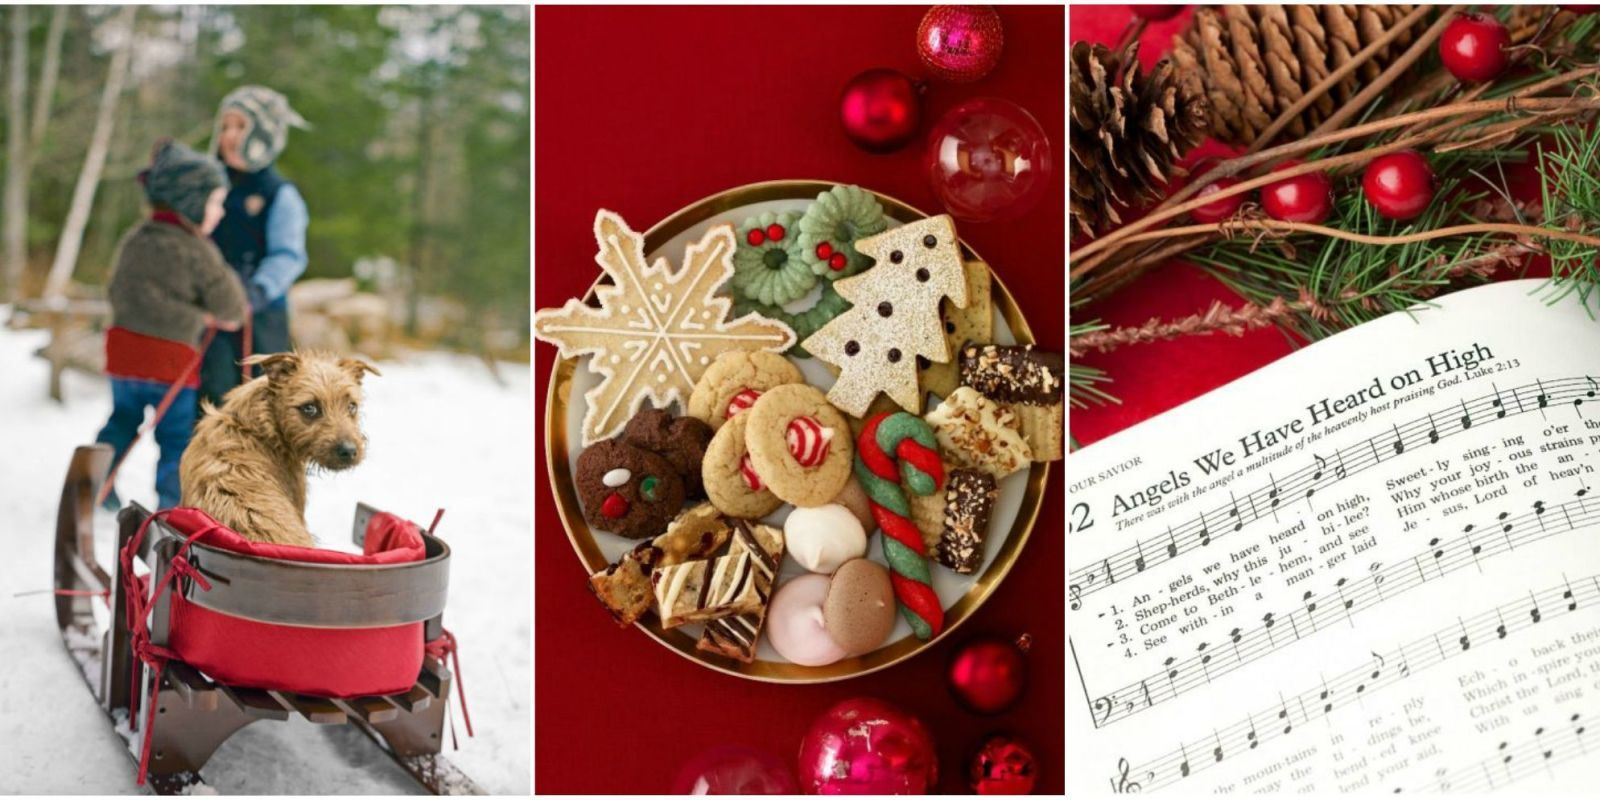 images christmas party 12 fun family christmas party ideas holiday party food and decor tips - Christmas Party Games For Large Groups